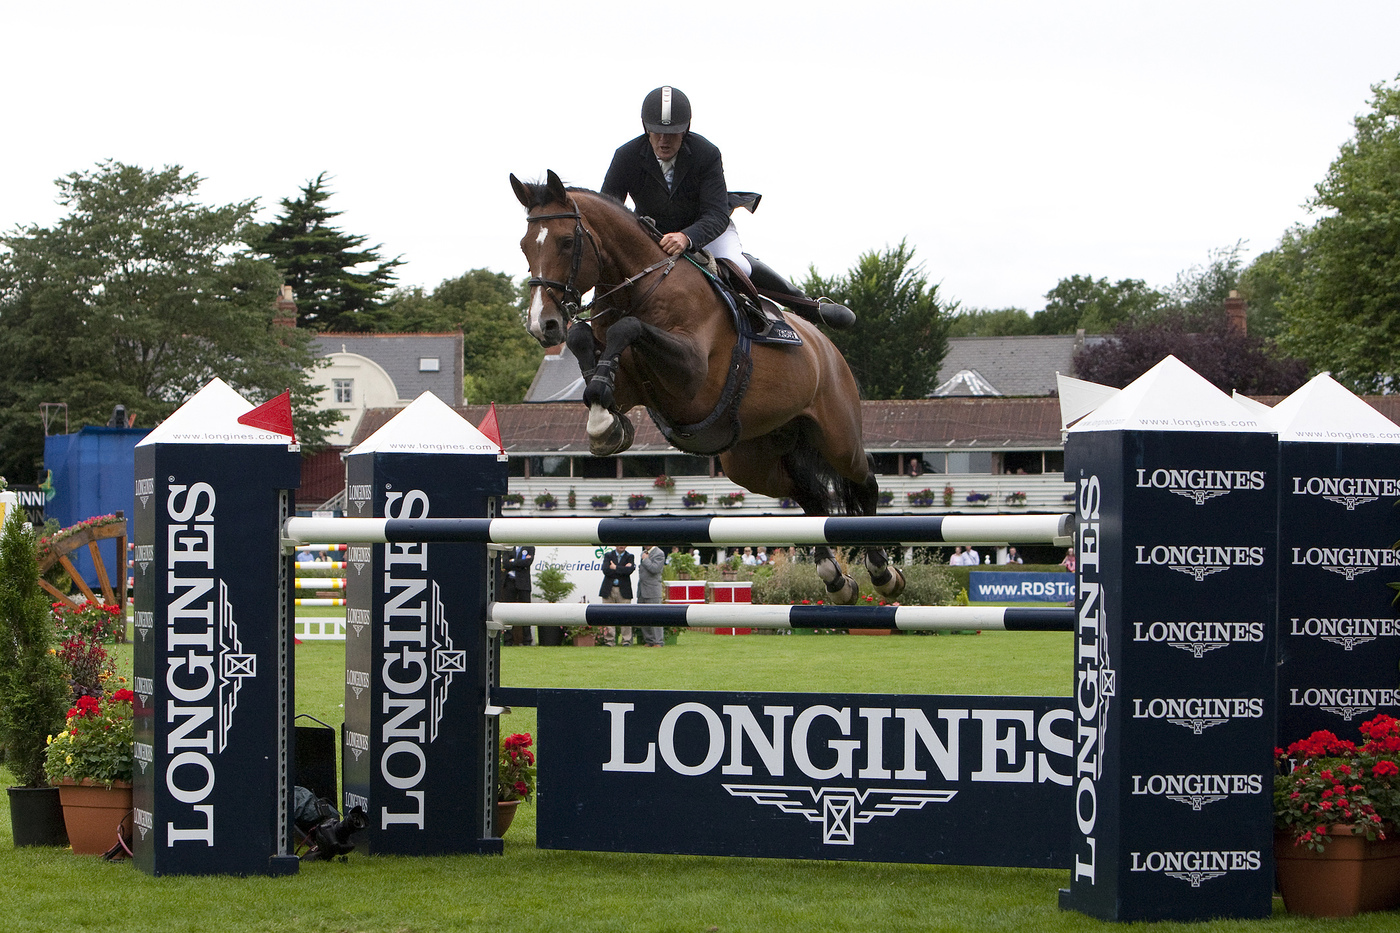 Longines Show Jumping Event: CSIO Dublin - The winners of the Longines Press Award for Elegance 8